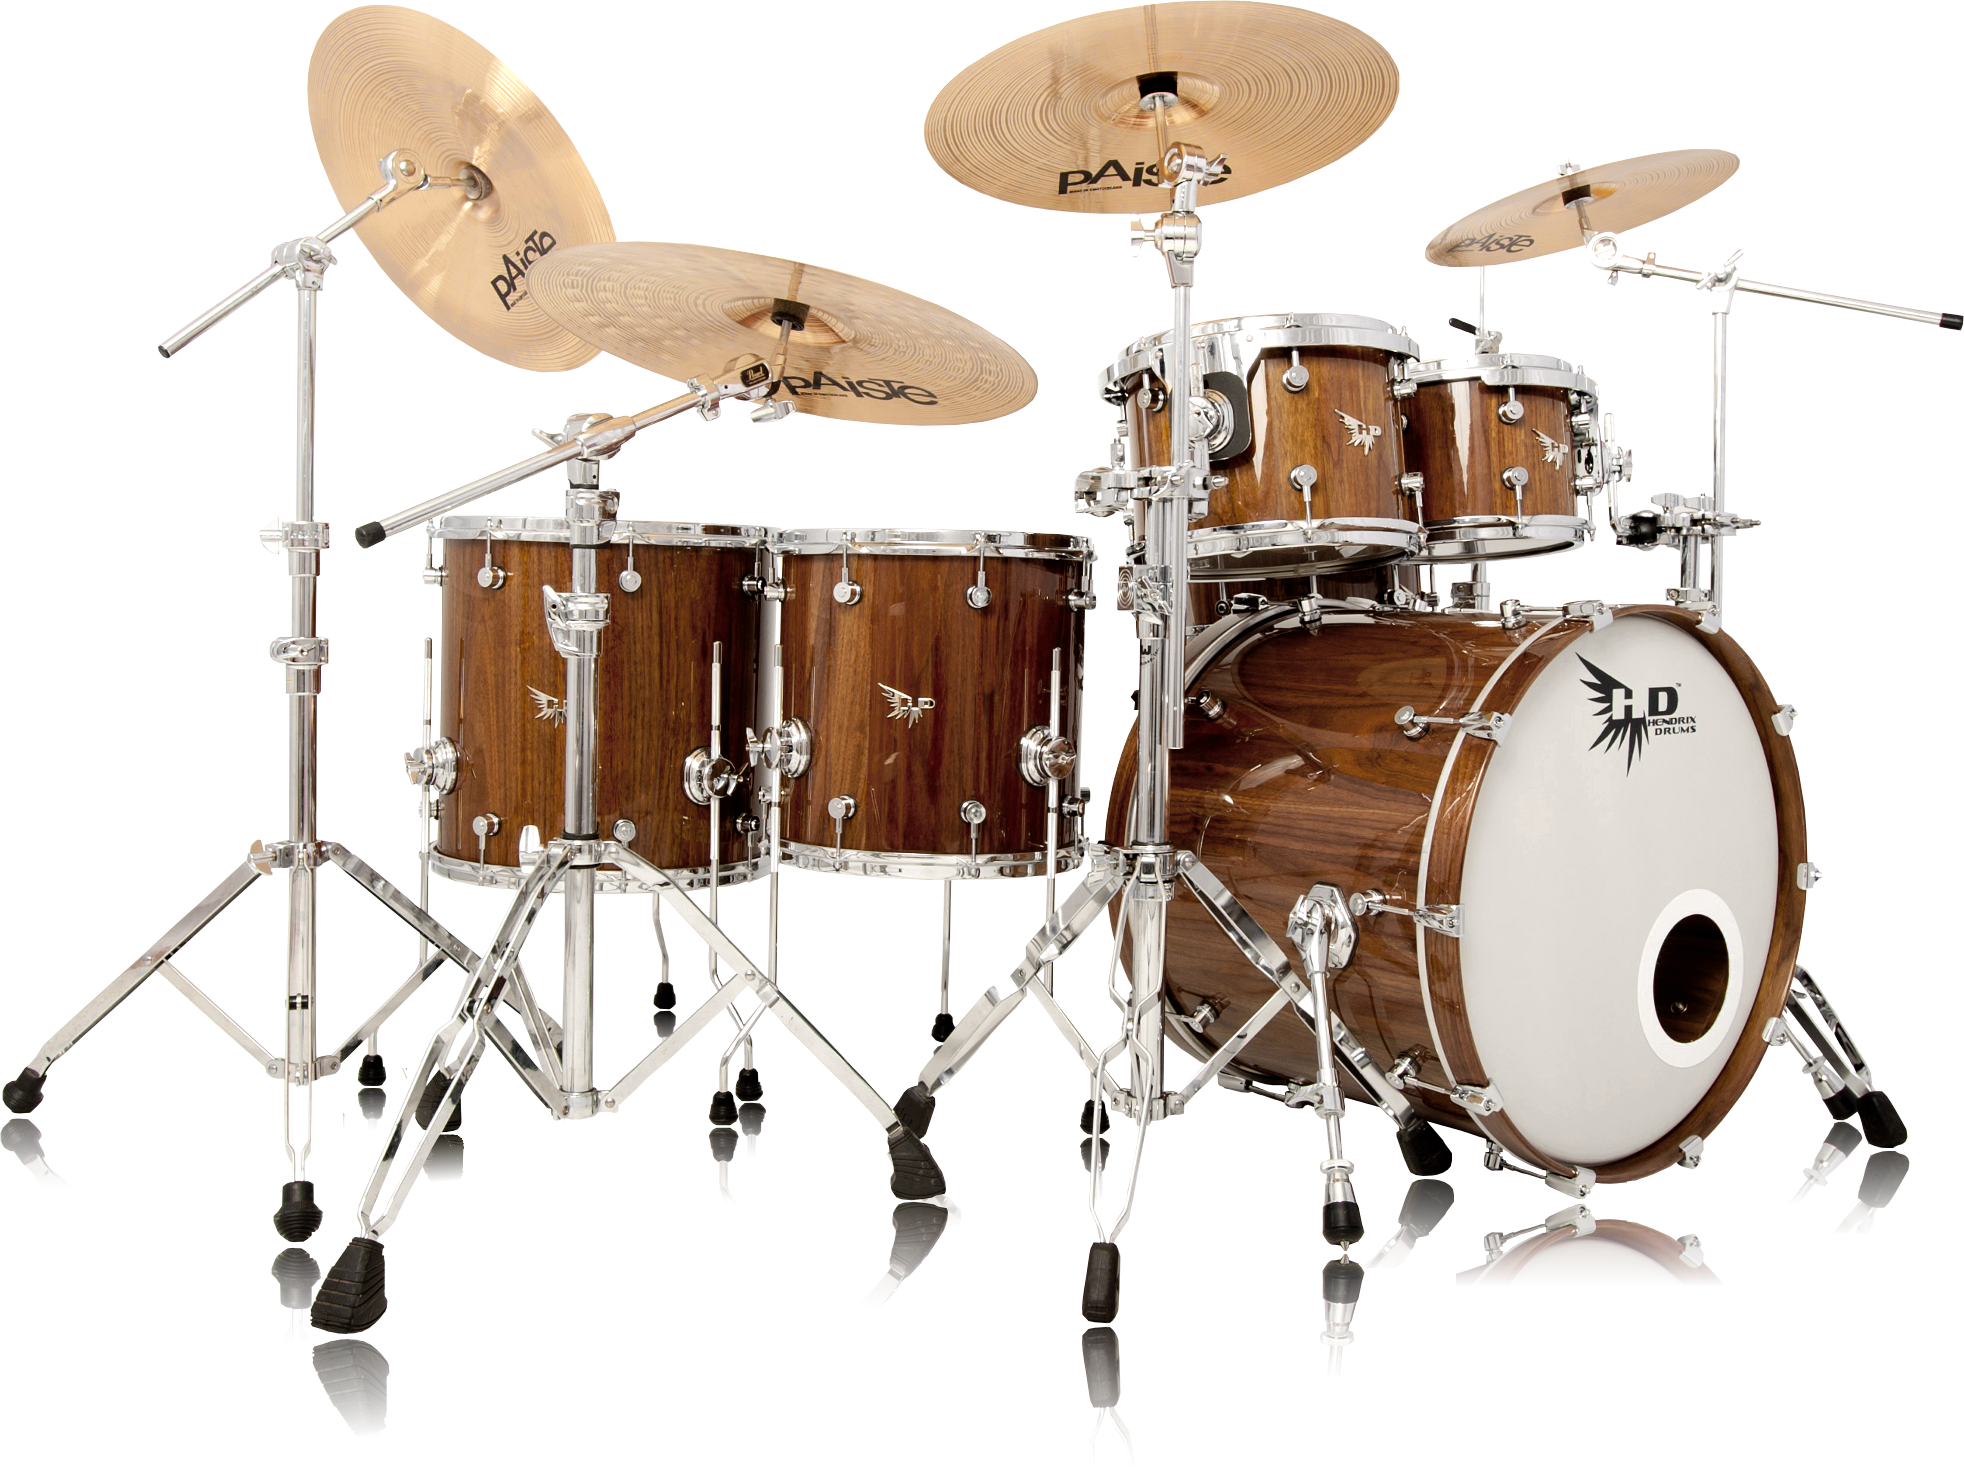 drum set png black and white transparent drum set black and white images pluspng #30094